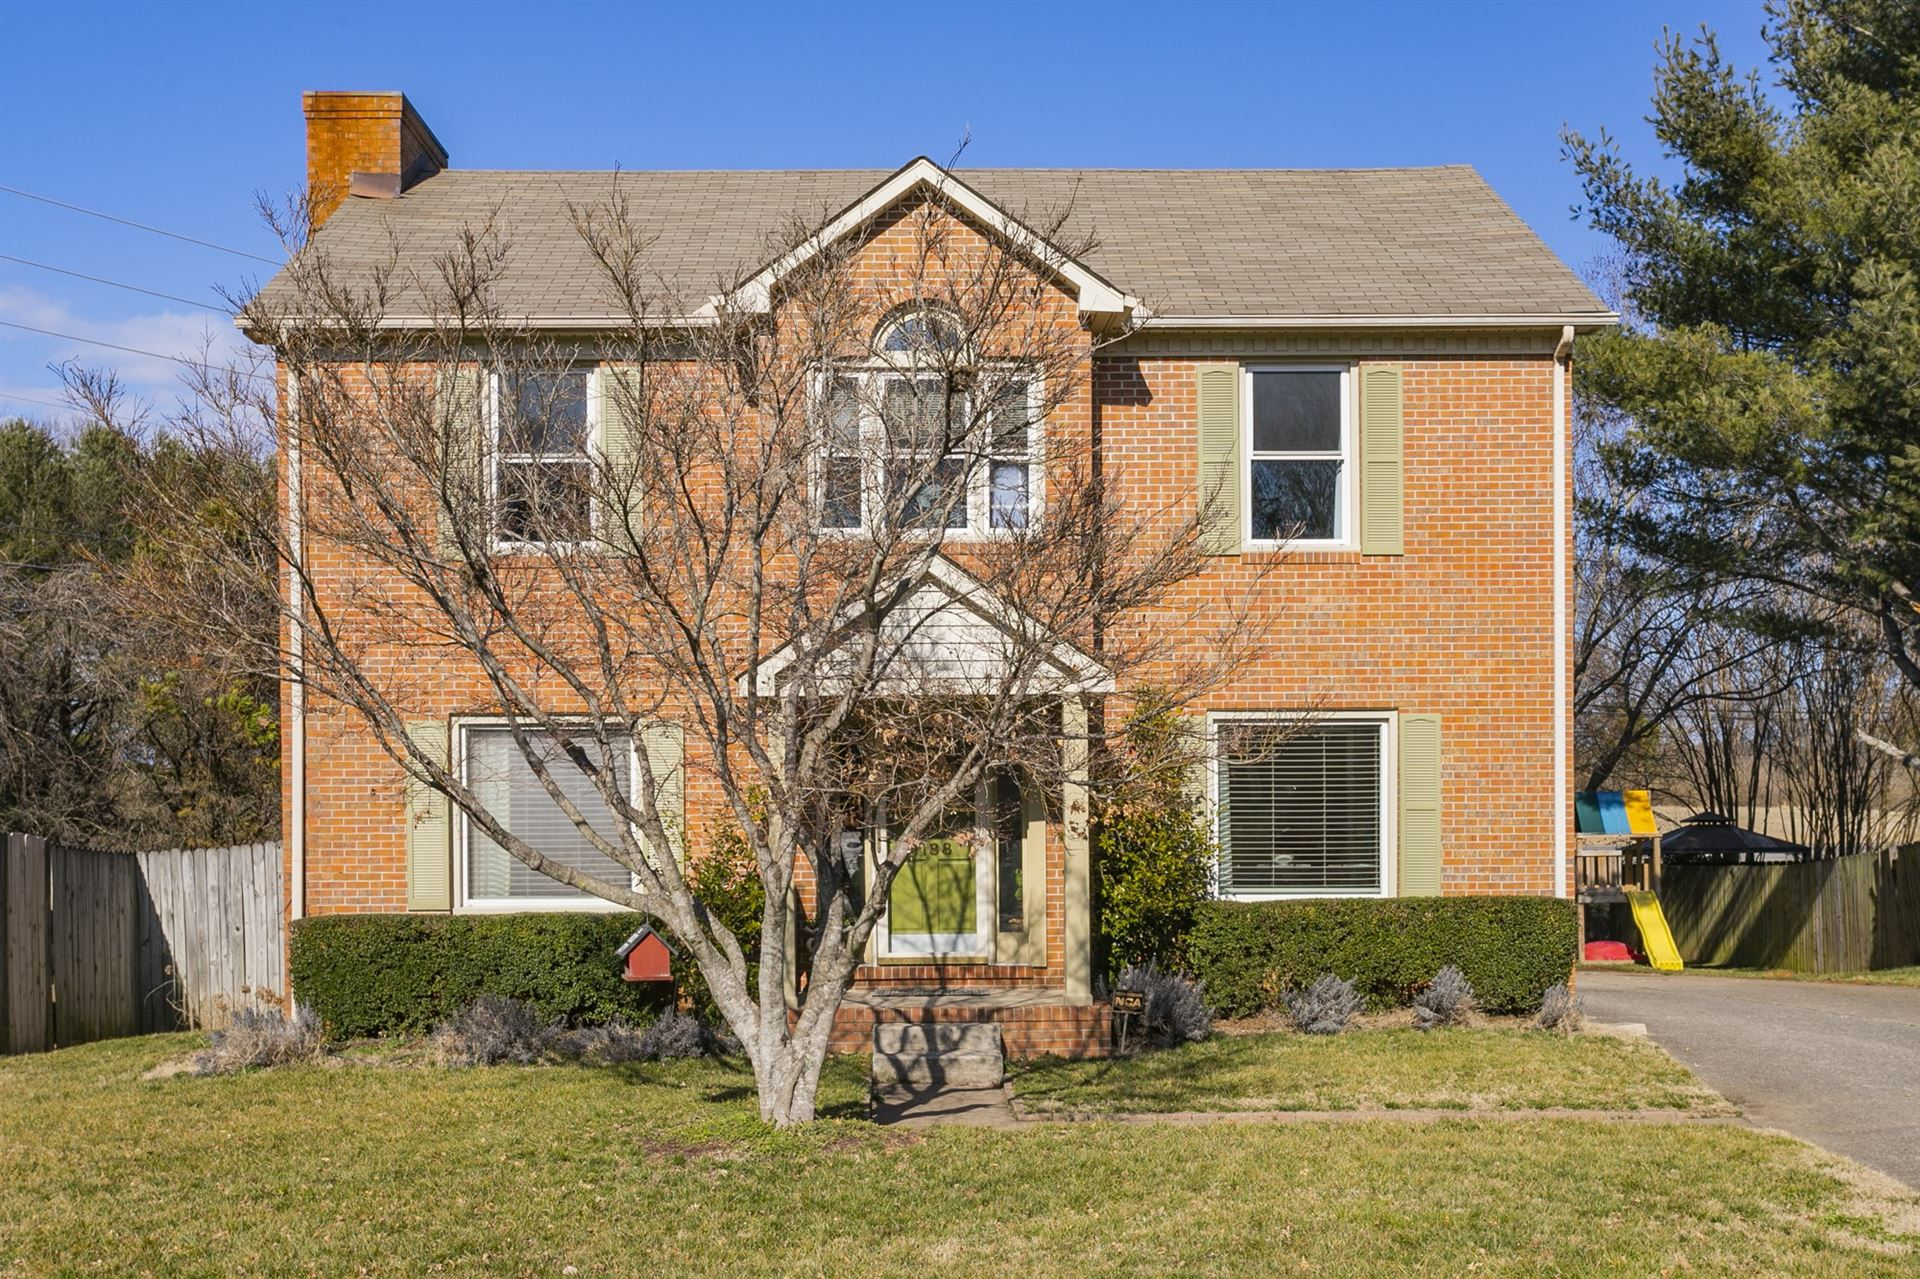 Photo of 1188 Hunters Chase Dr, Franklin, TN 37064 (MLS # 2232603)